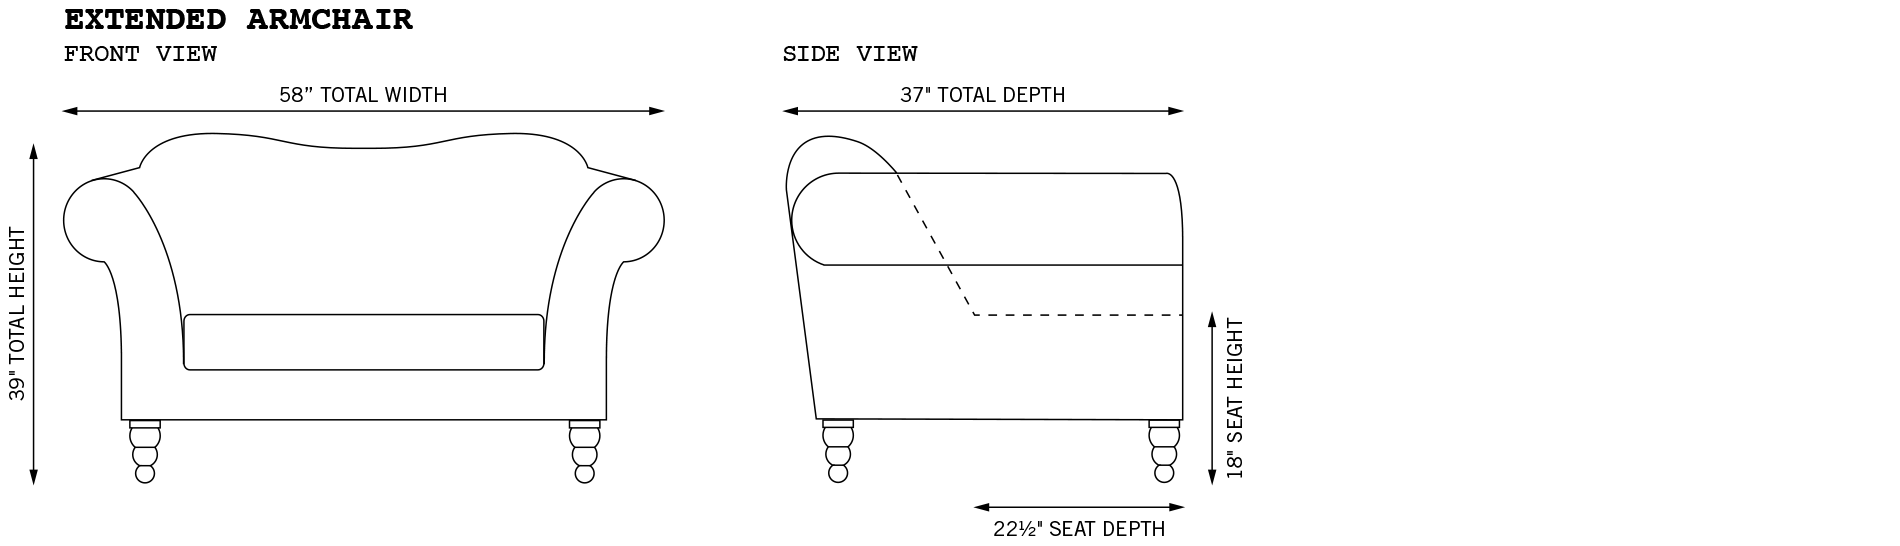 Watson Extended Armchair Dimensions